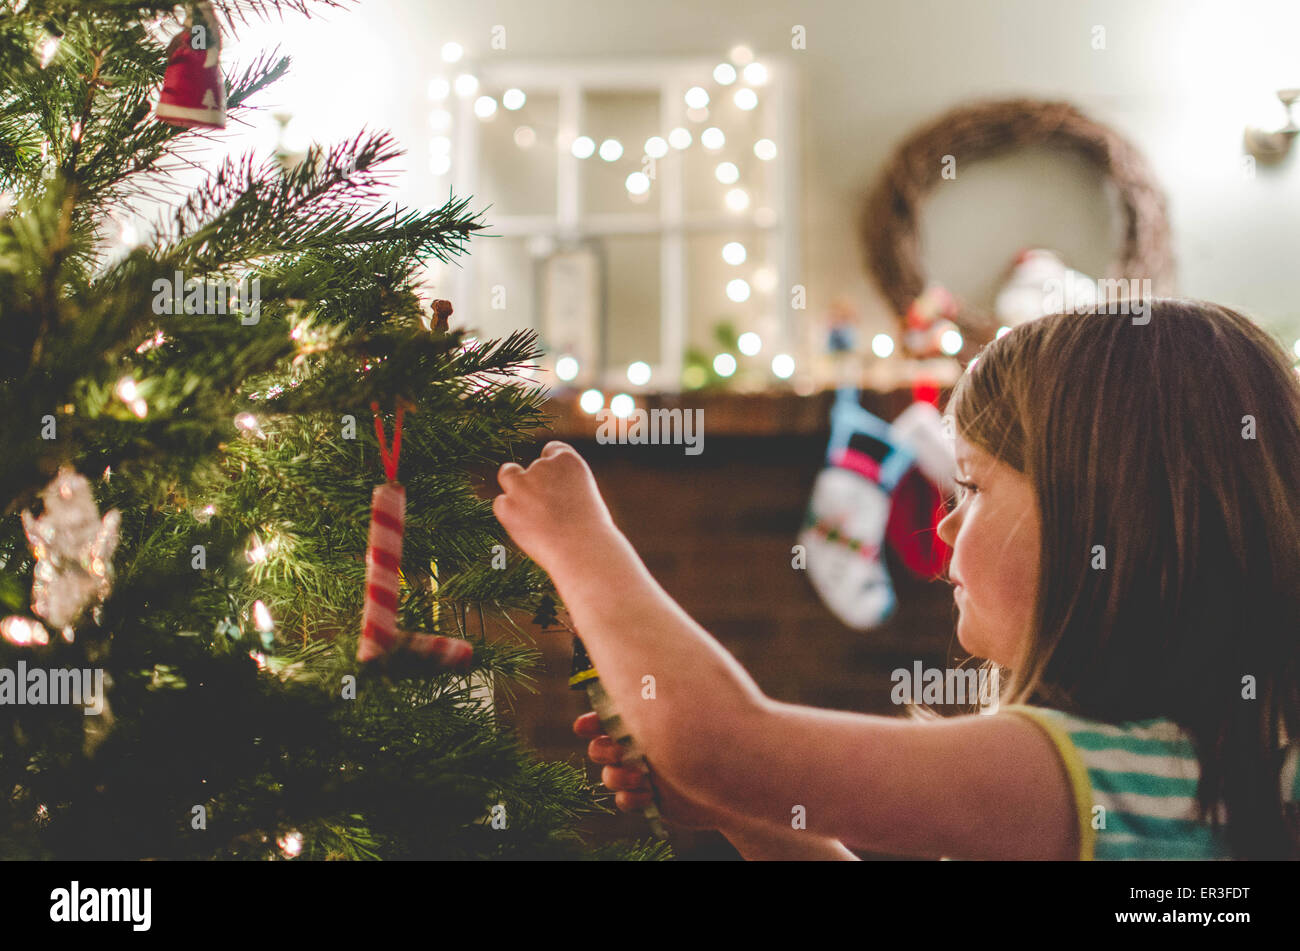 Girl decorating a Christmas Tree Photo Stock